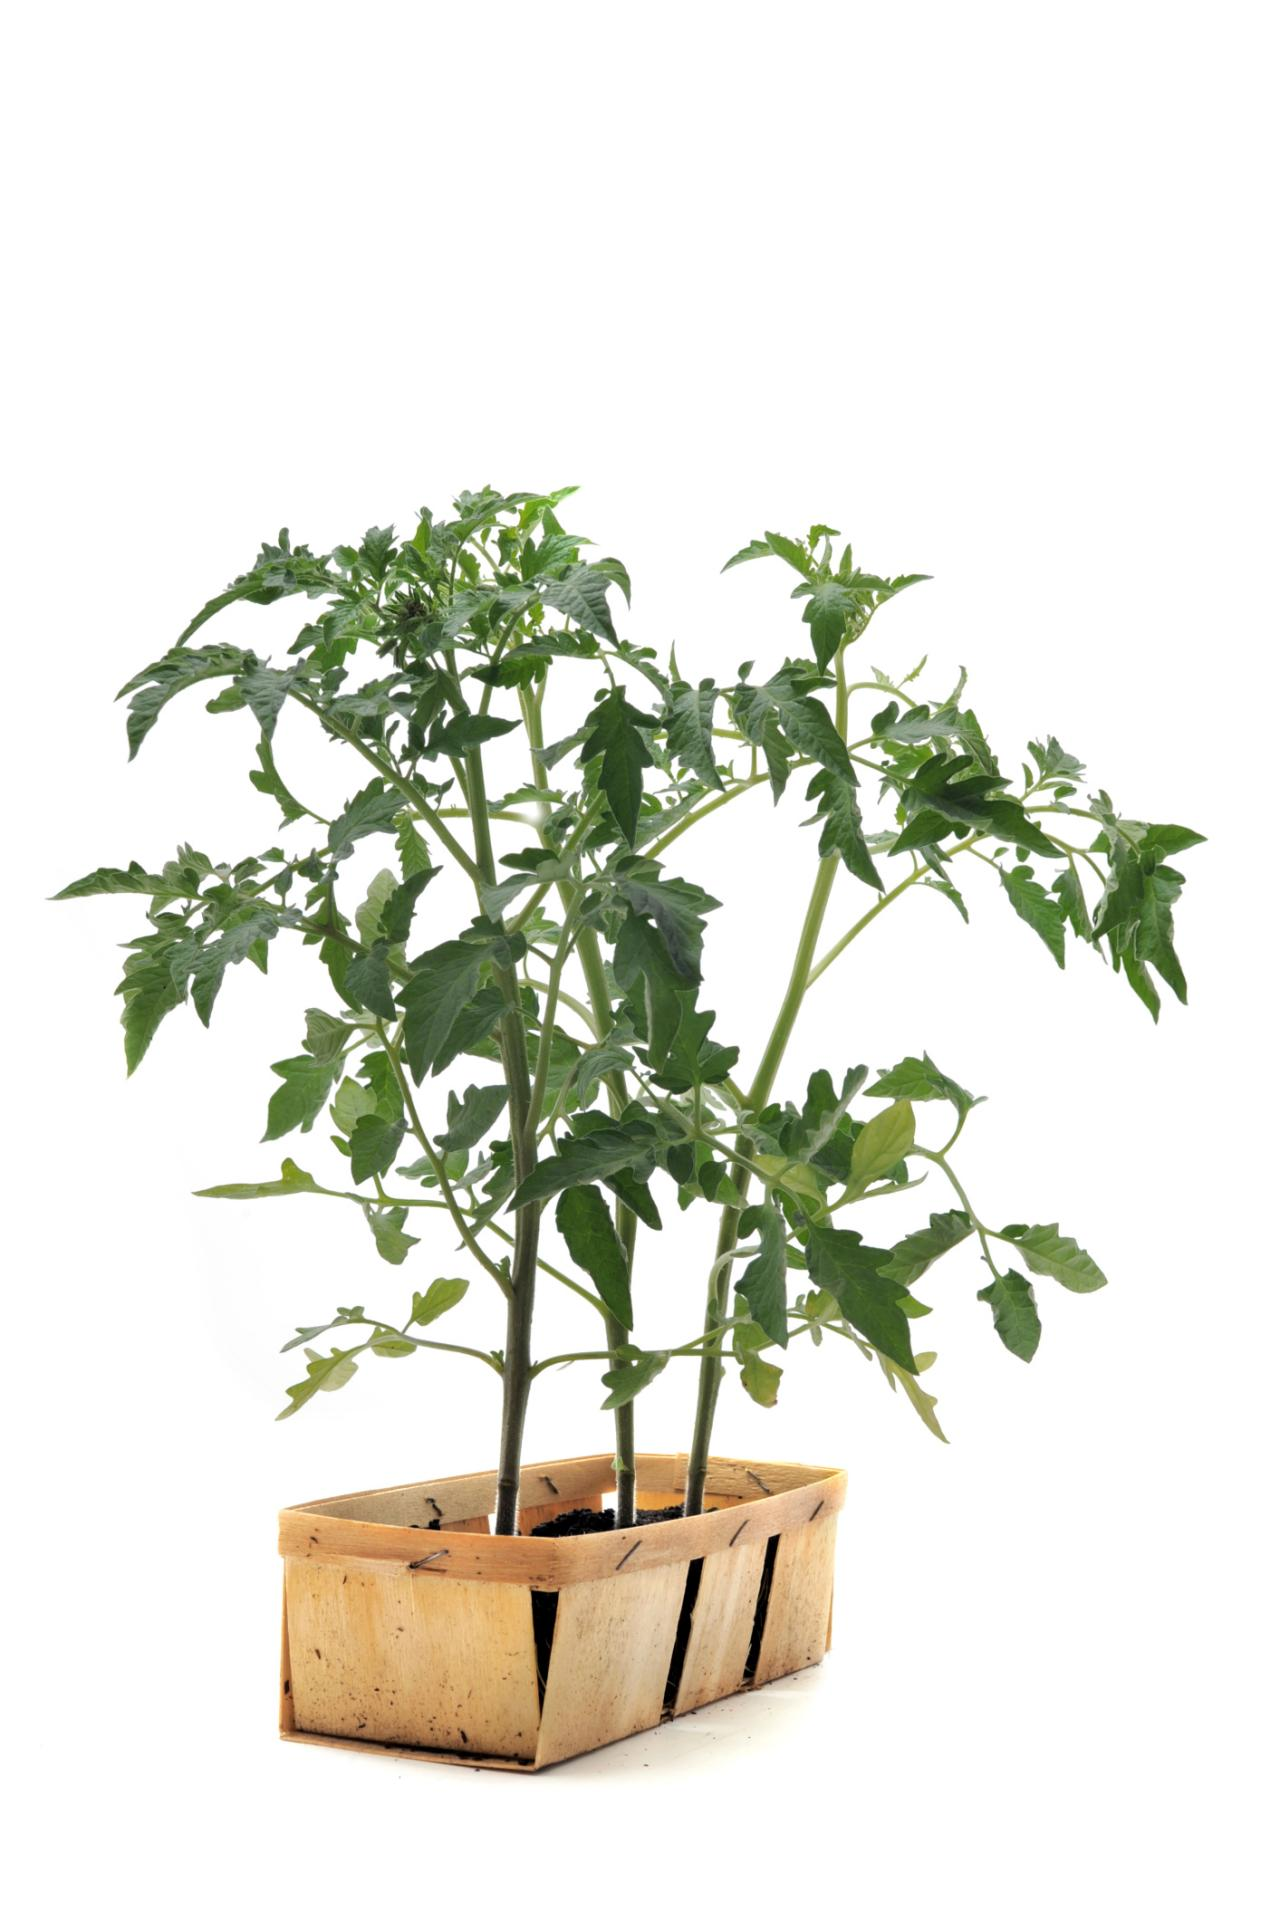 Growing Tomatoes Indoors HGTV